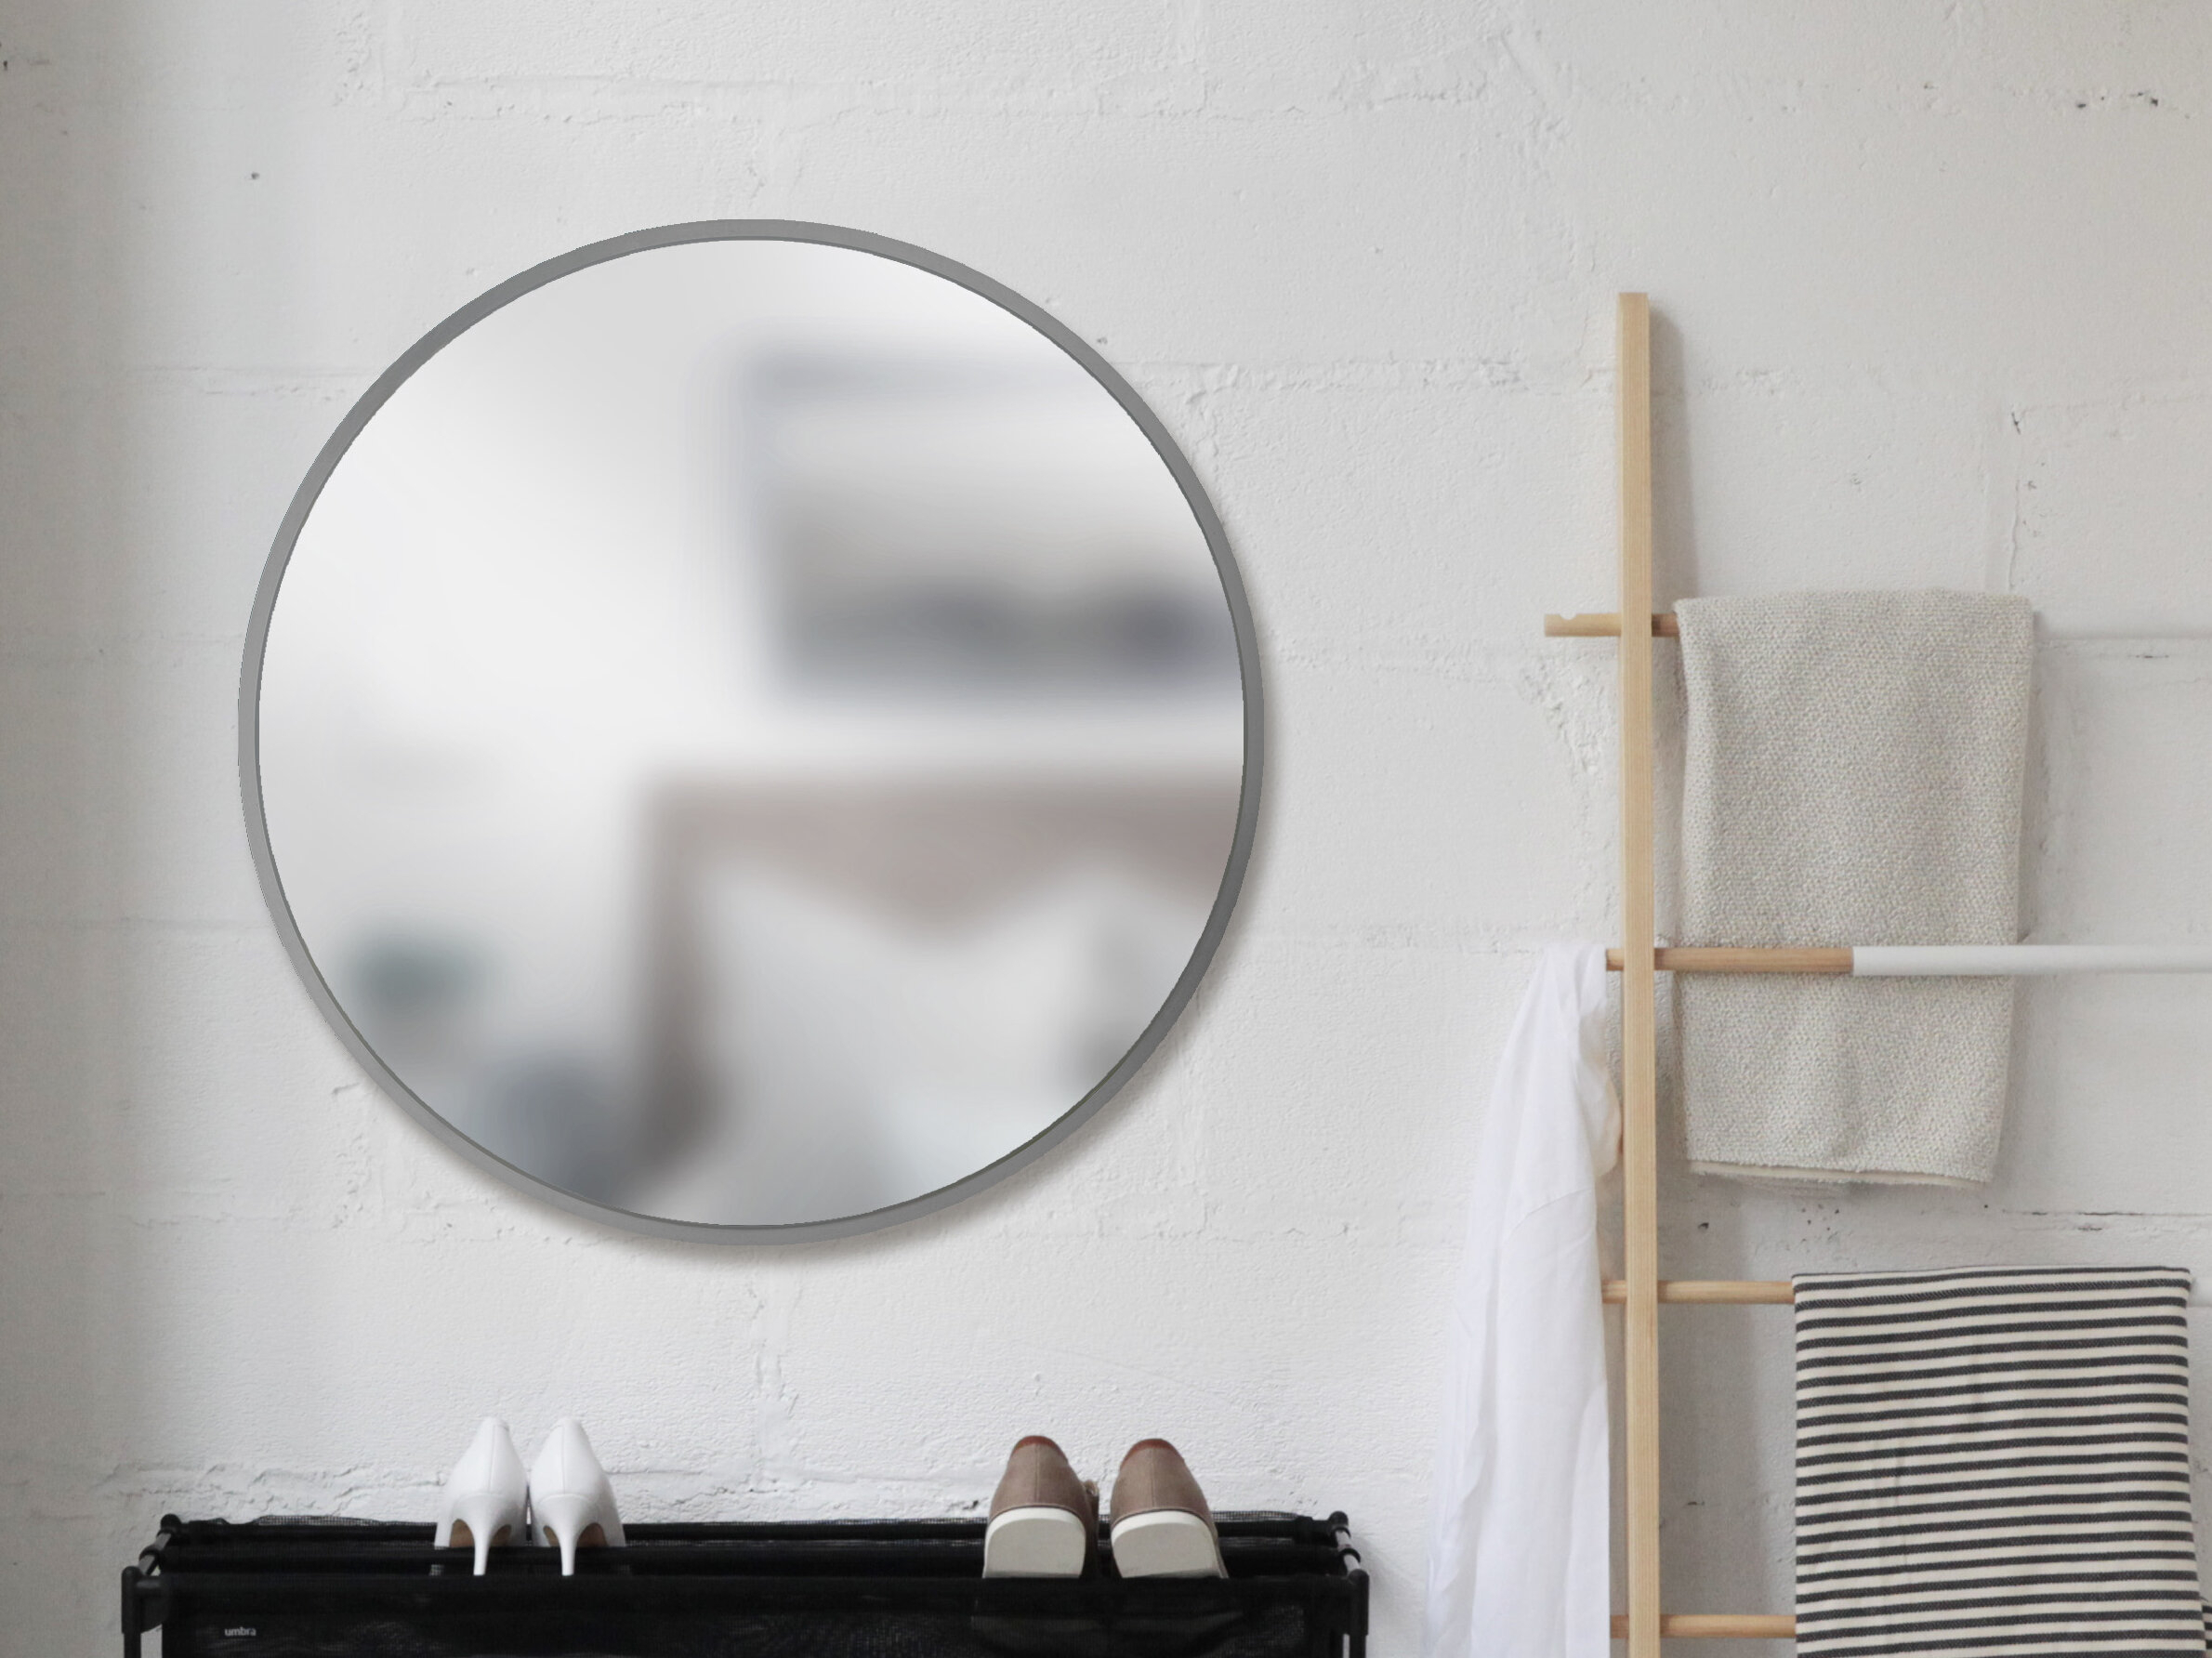 Hub Modern And Contemporary Accent Mirror Within Hub Modern And Contemporary Accent Mirrors (View 14 of 30)